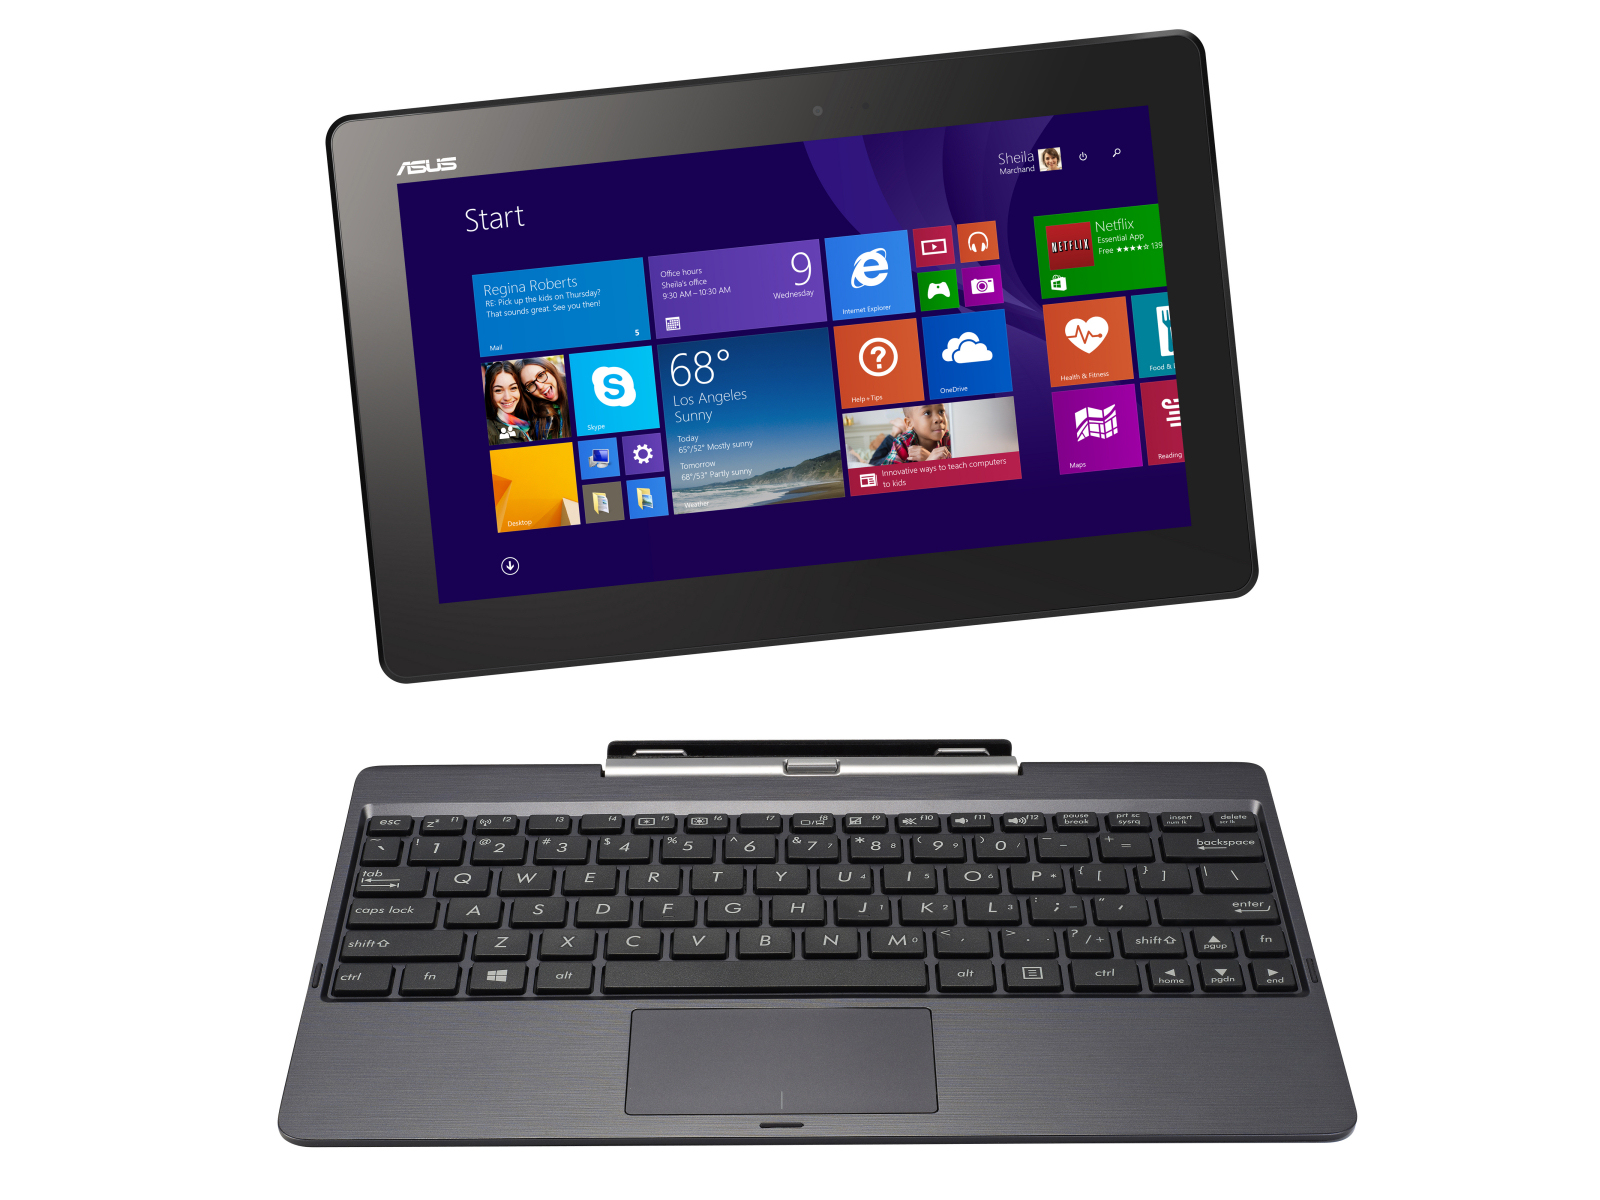 ASUS TRANSFORMER BOOK T100TAL BROADCOM WLAN DRIVER FOR WINDOWS 7